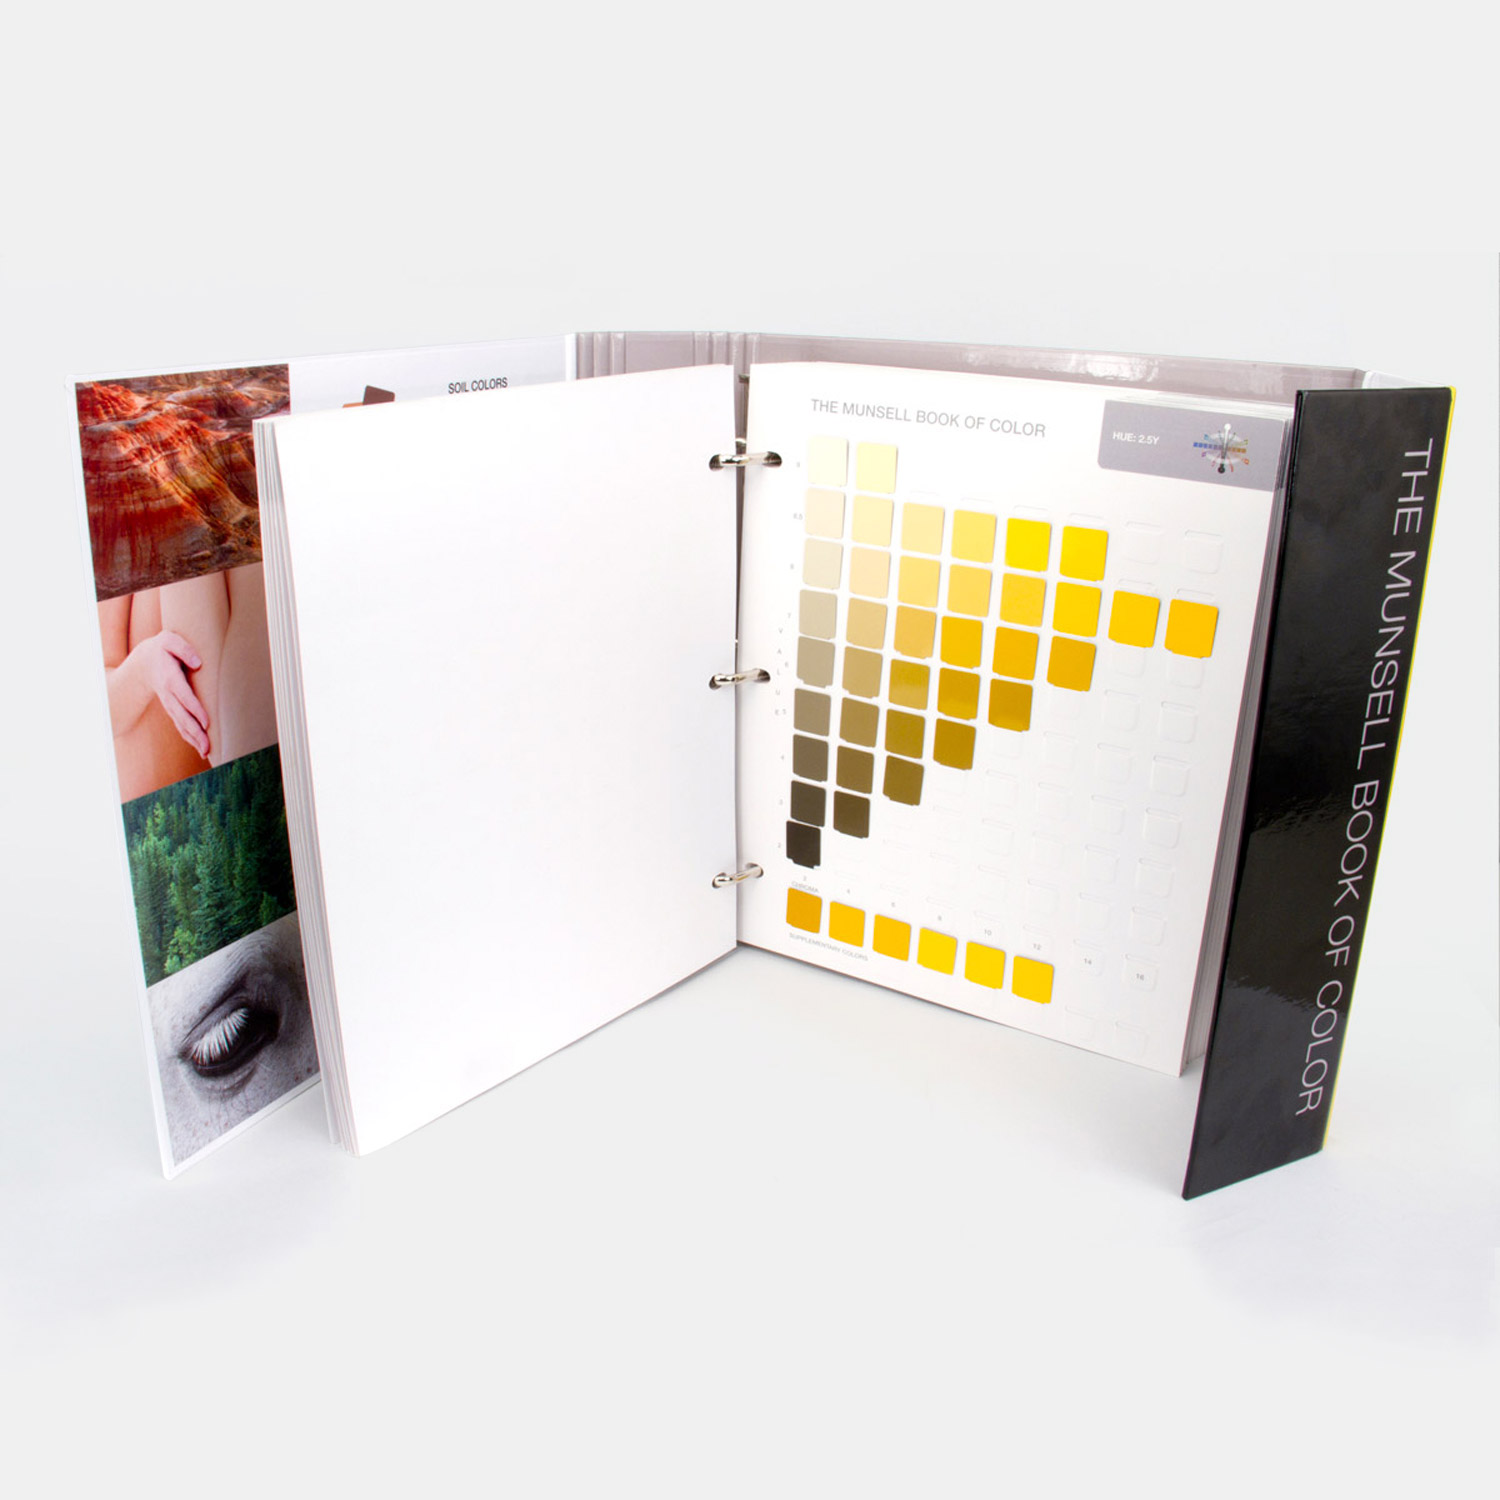 Munsell Book of Color, Glossy Edition